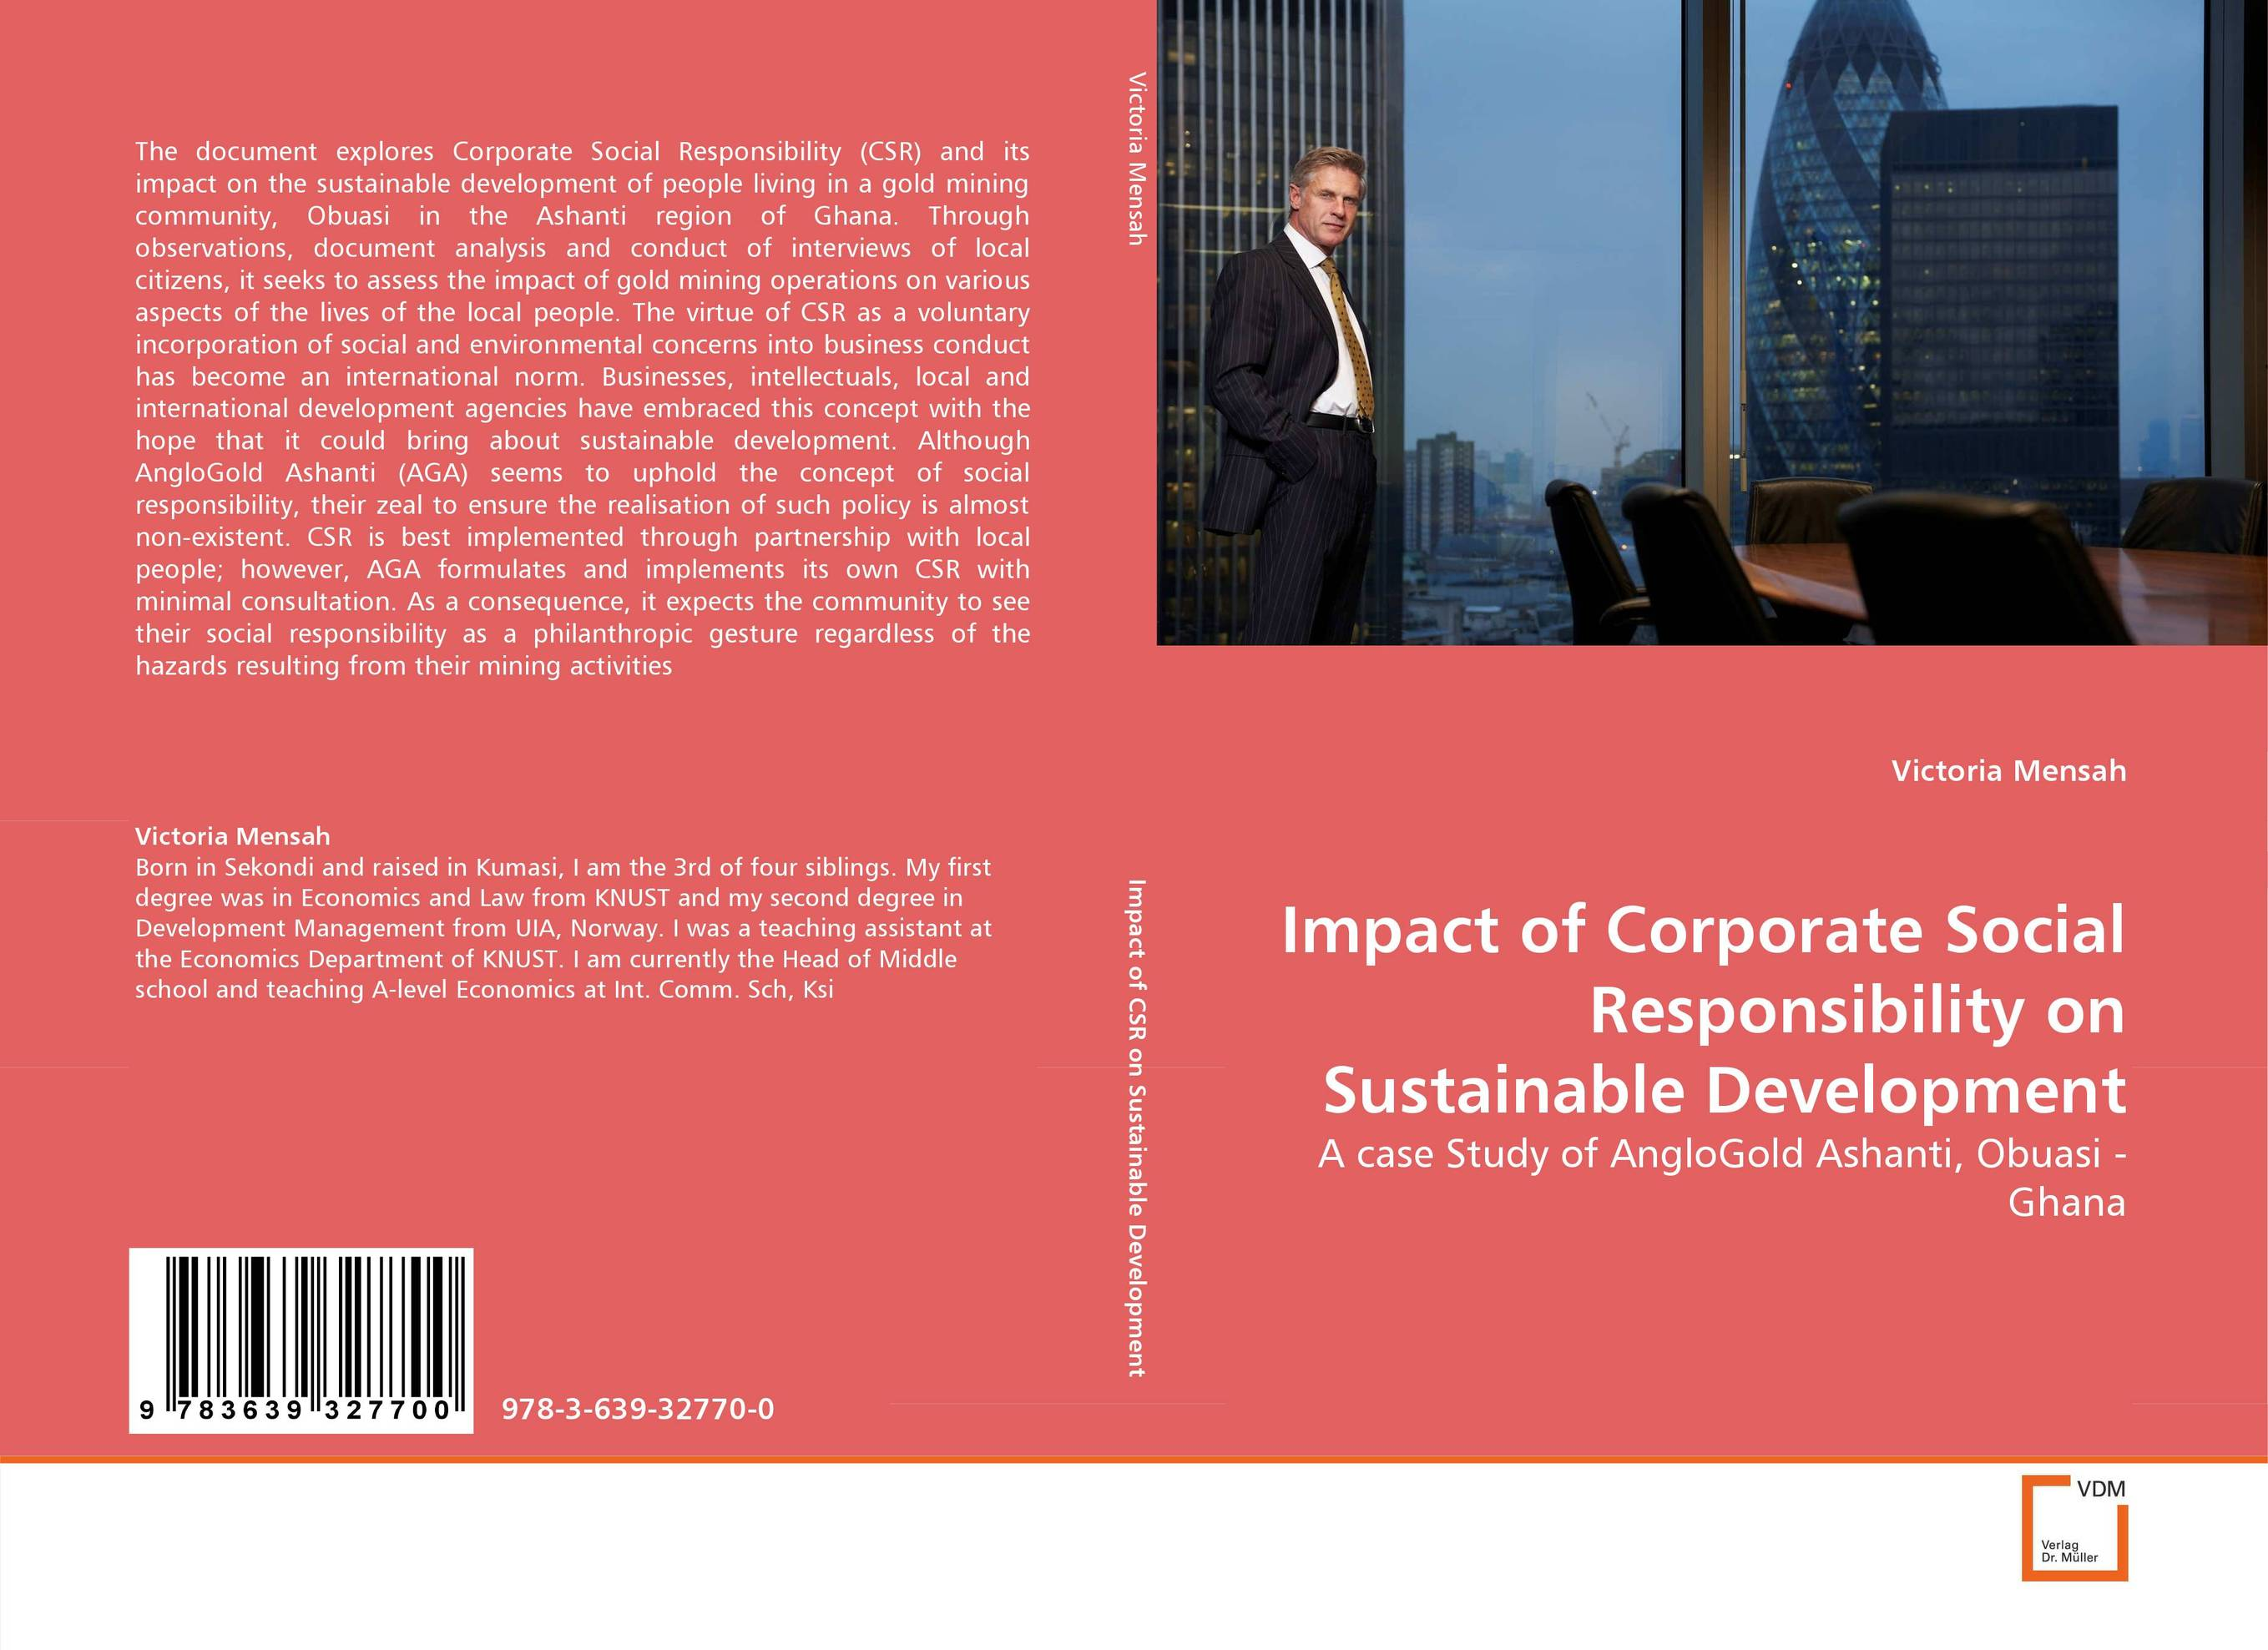 Impact of Corporate Social Responsibility on Sustainable Development social media impact on state and partnership governance